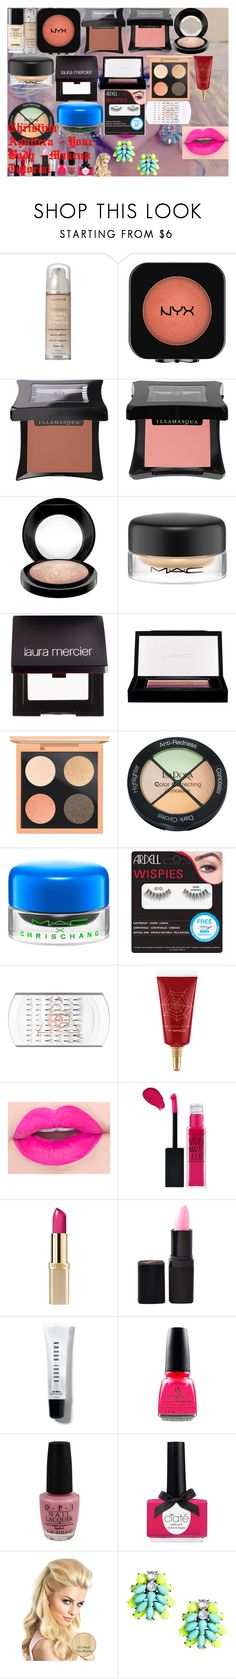 """Christina Aguilera - Your Body - Makeup Tutorial"" by oroartye-1 on Polyvore featuring beauty, Lumière, Neutrogena, Illamasqua, MAC Cosmetics, Laura Mercier, Isadora, Ardell, Maybelline and L'Oréal Paris"